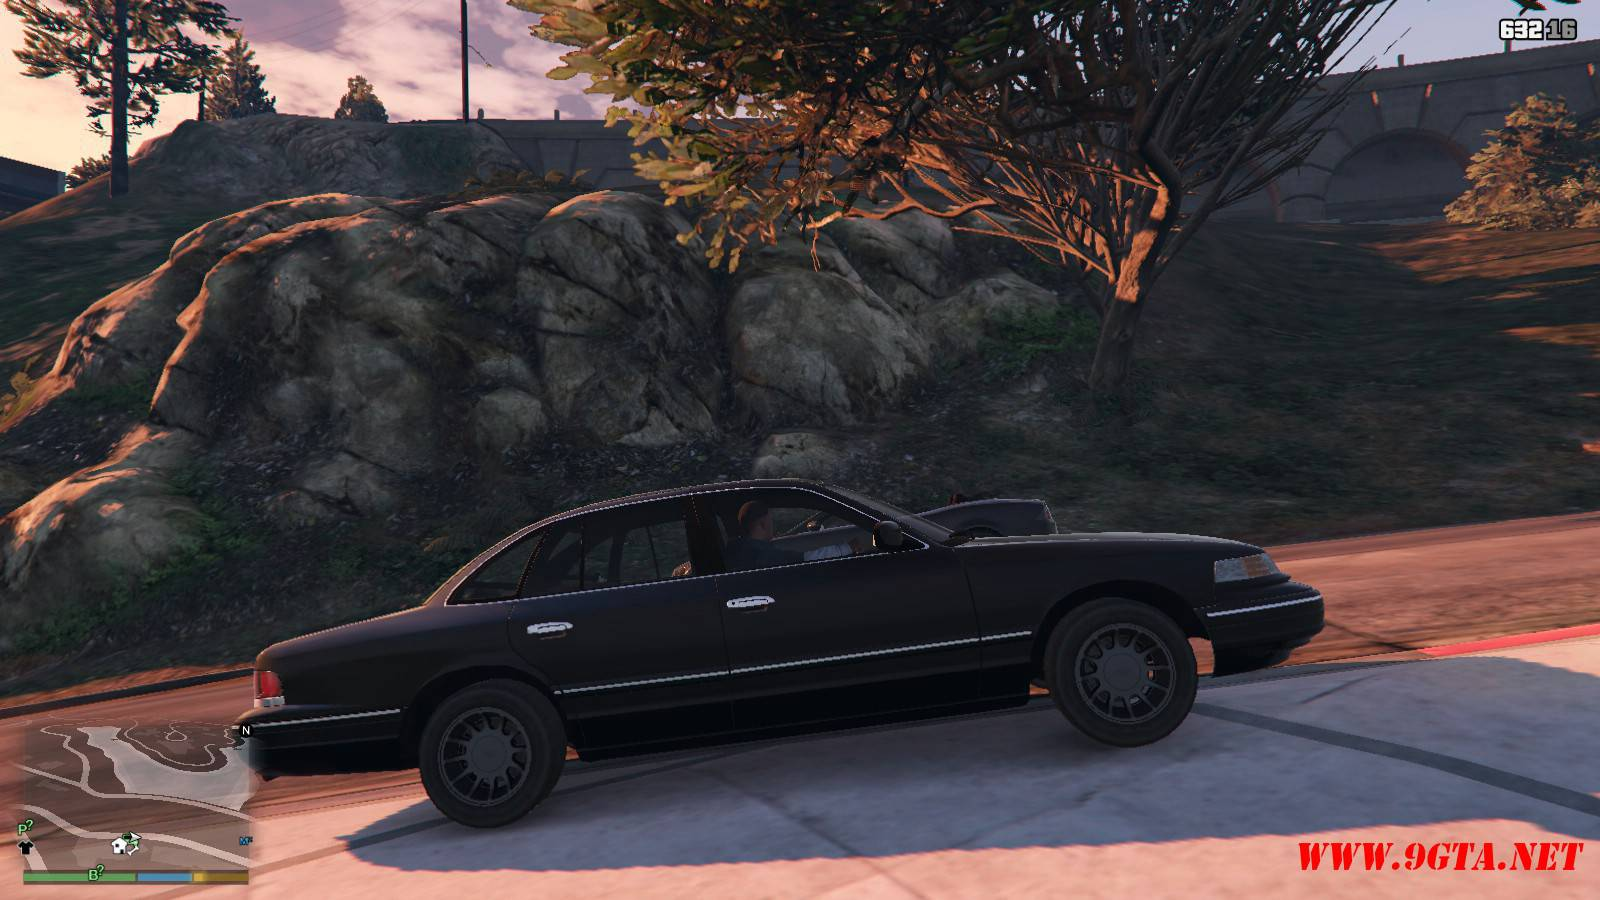 1996 Ford Crown Victoria GTA5 Mods (6)